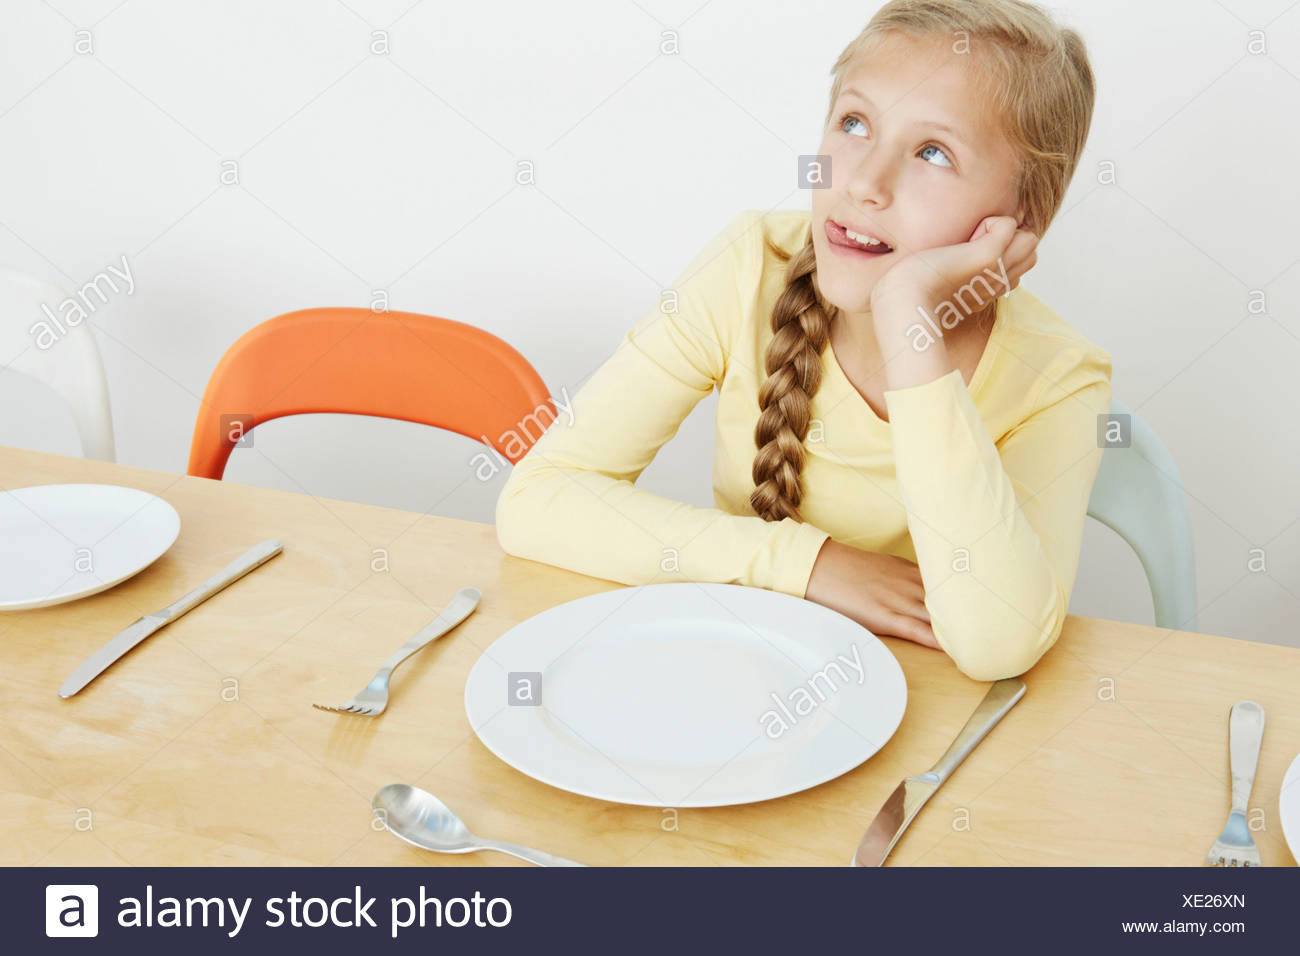 Girl sitting at table with empty plate, looking up - Stock Image